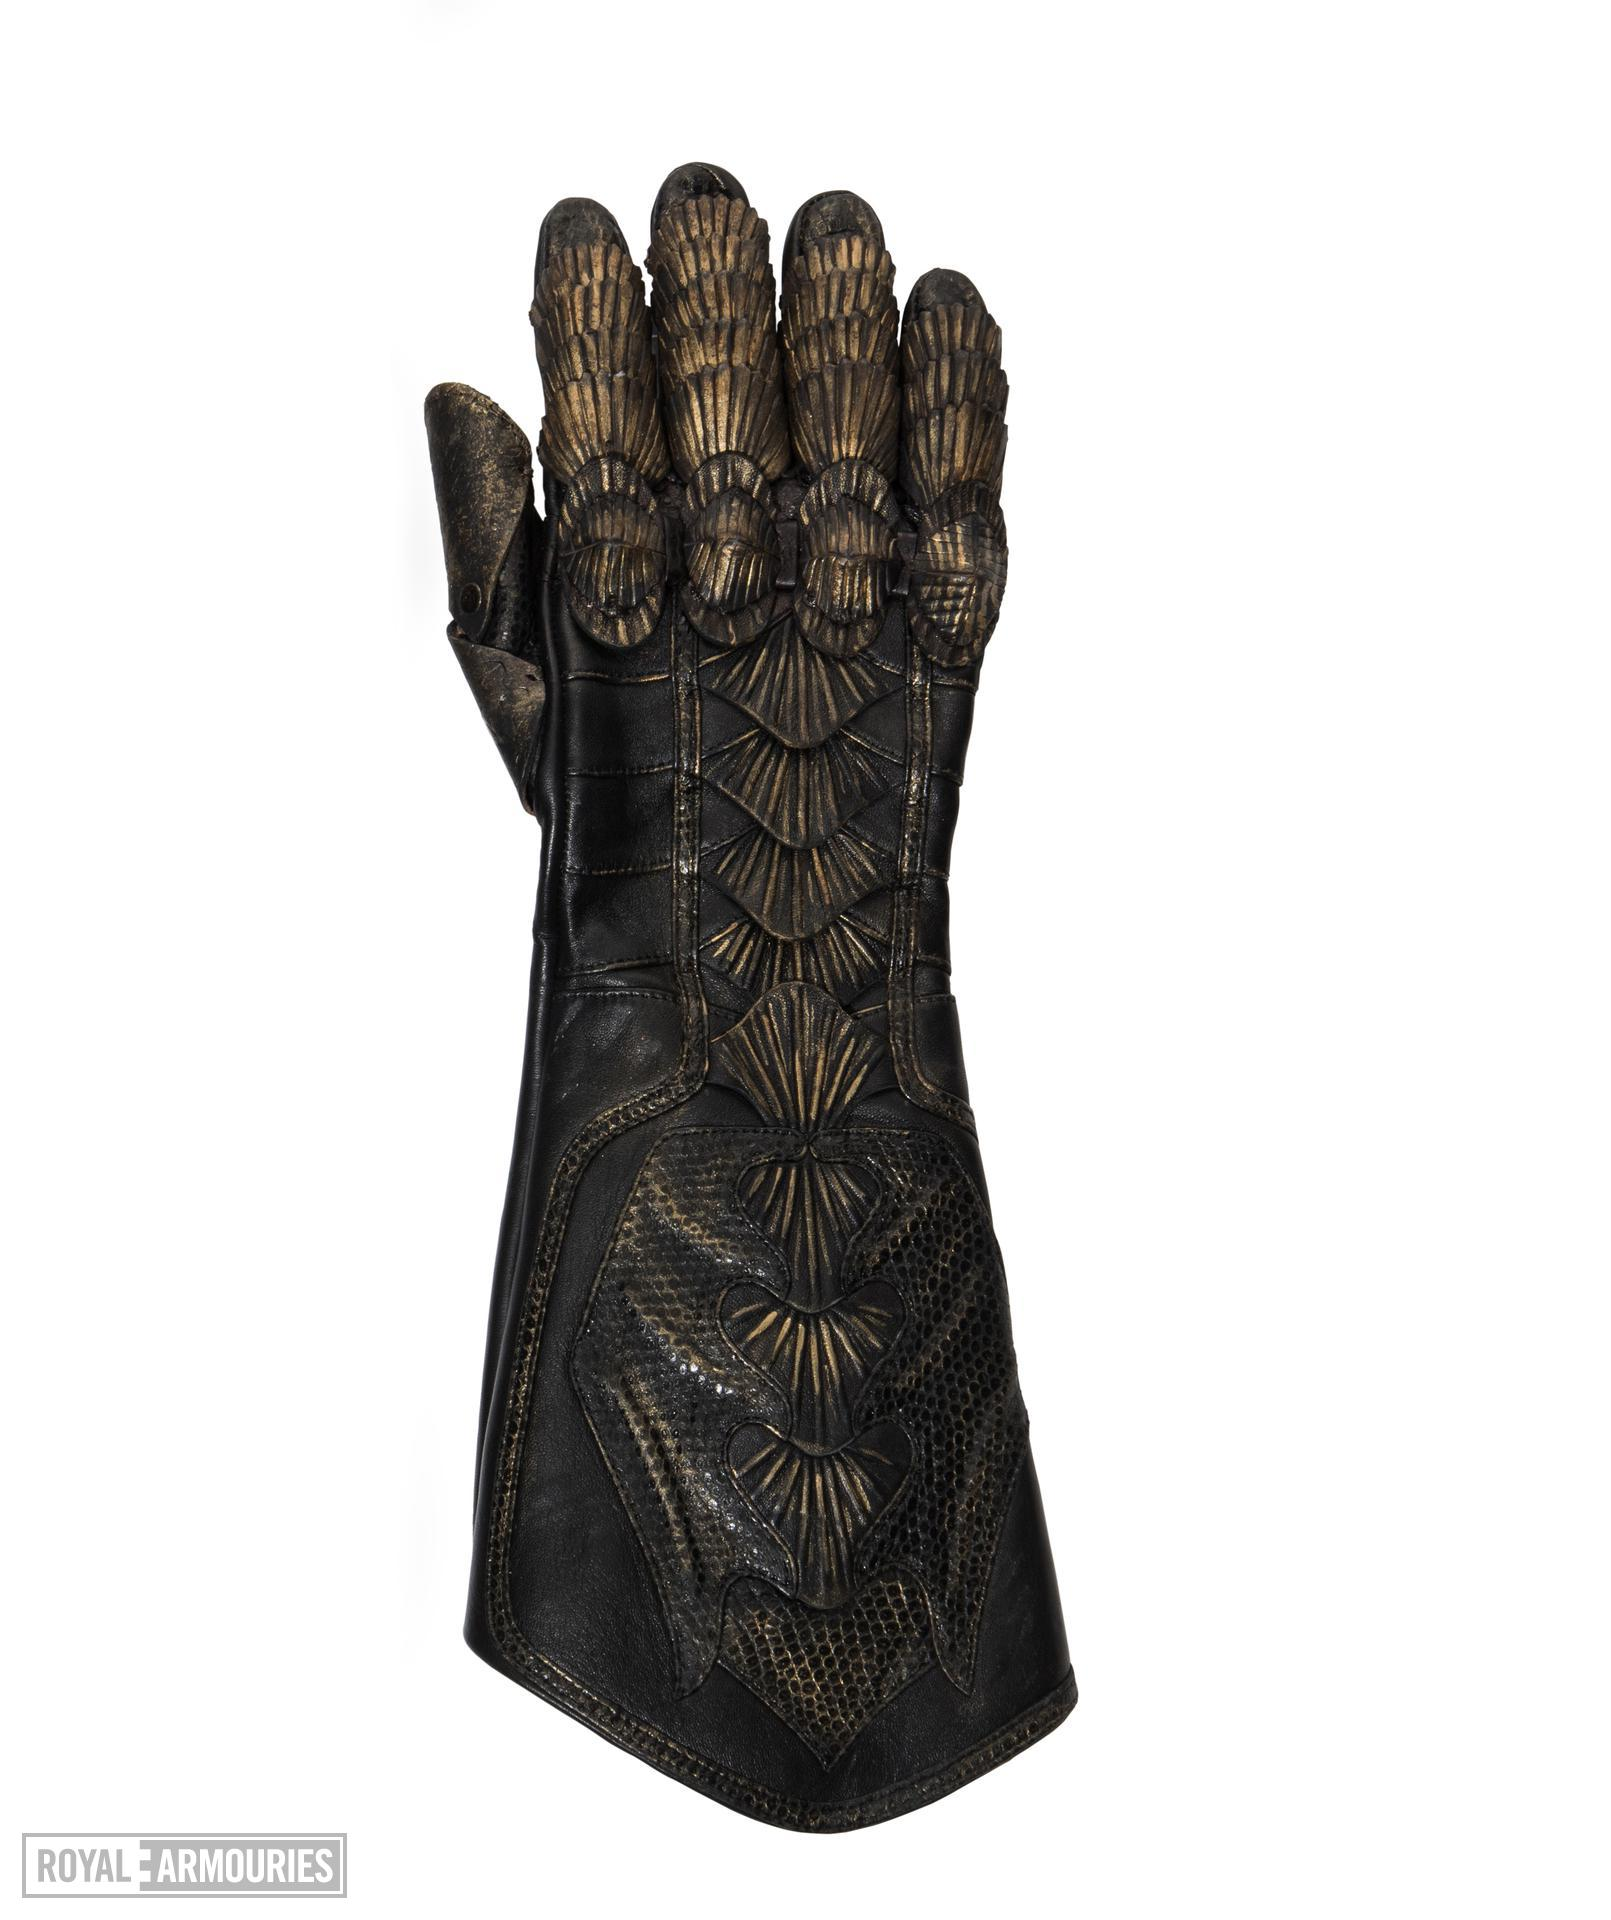 Right glove - Right glove from The Lord Marshal's Costume